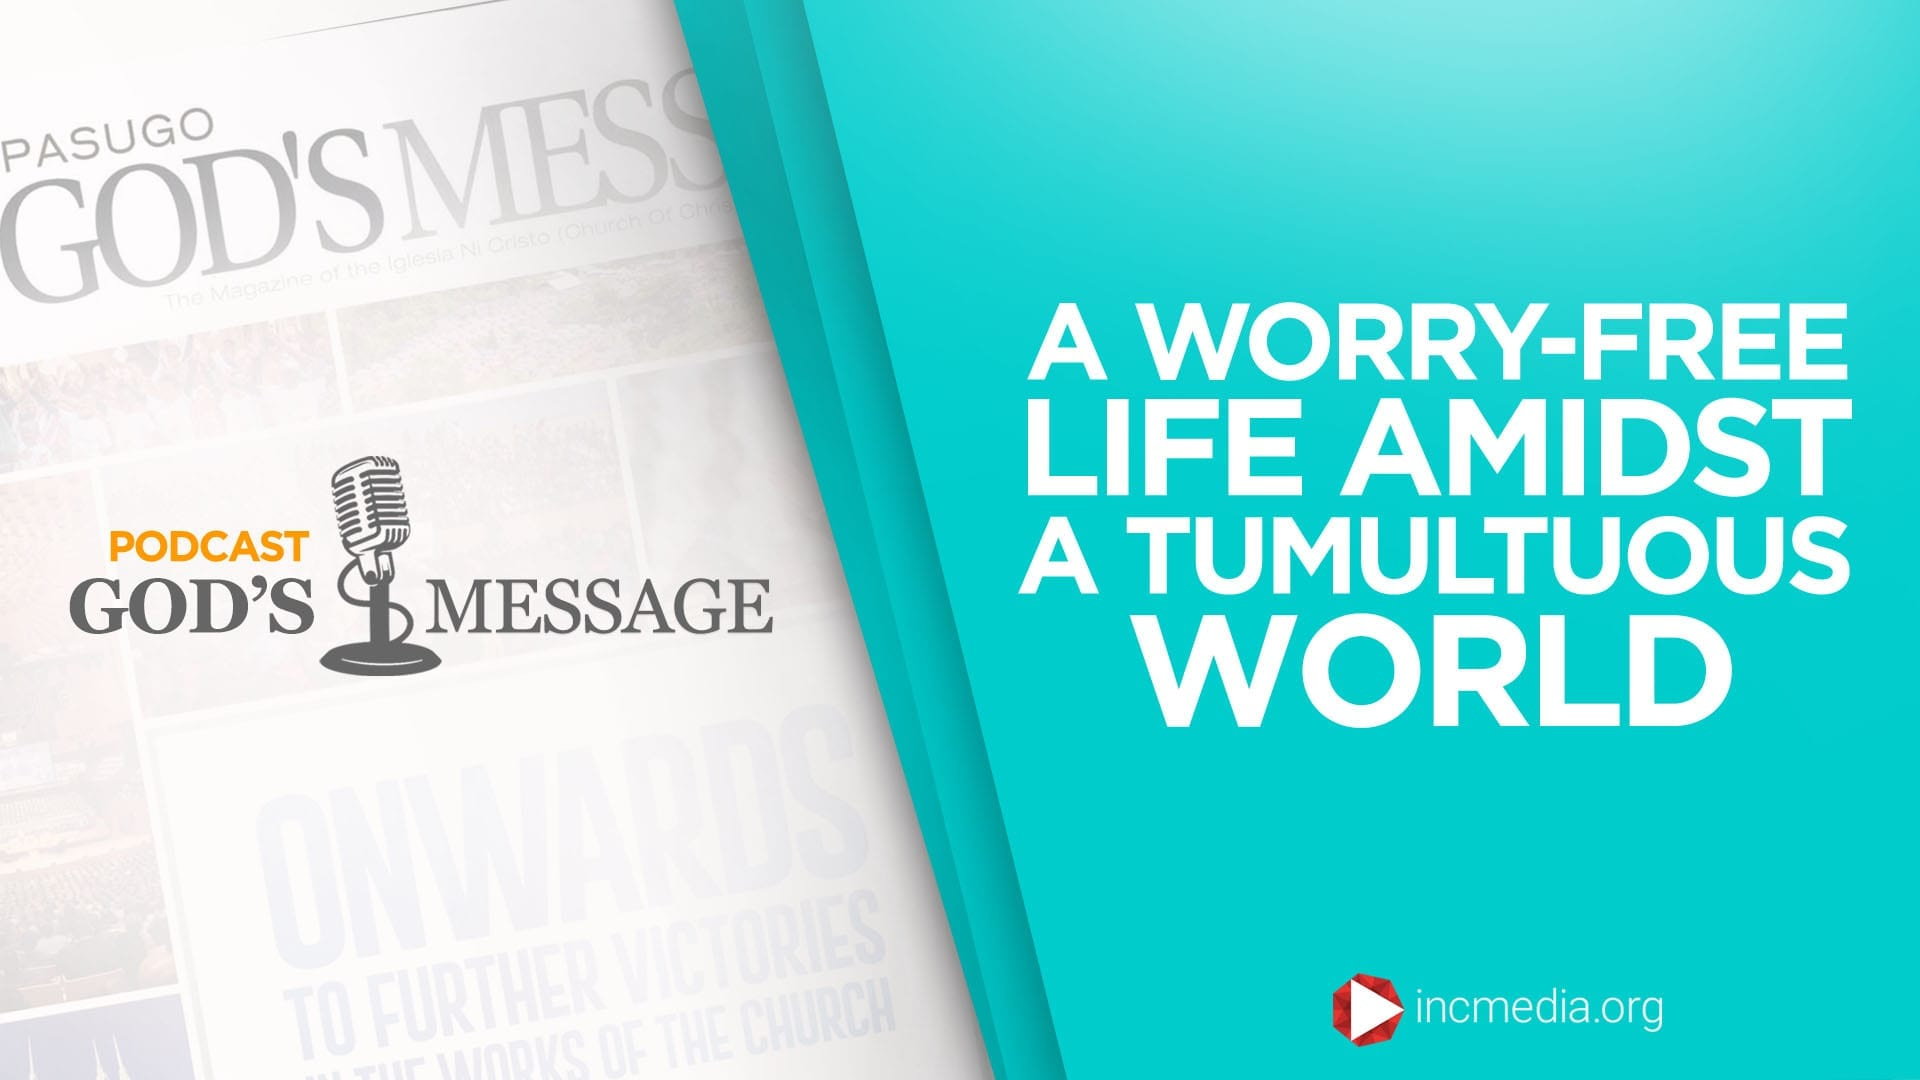 """God's Message Podcast background with text """"A worry-free life amidst a tumultuos world"""